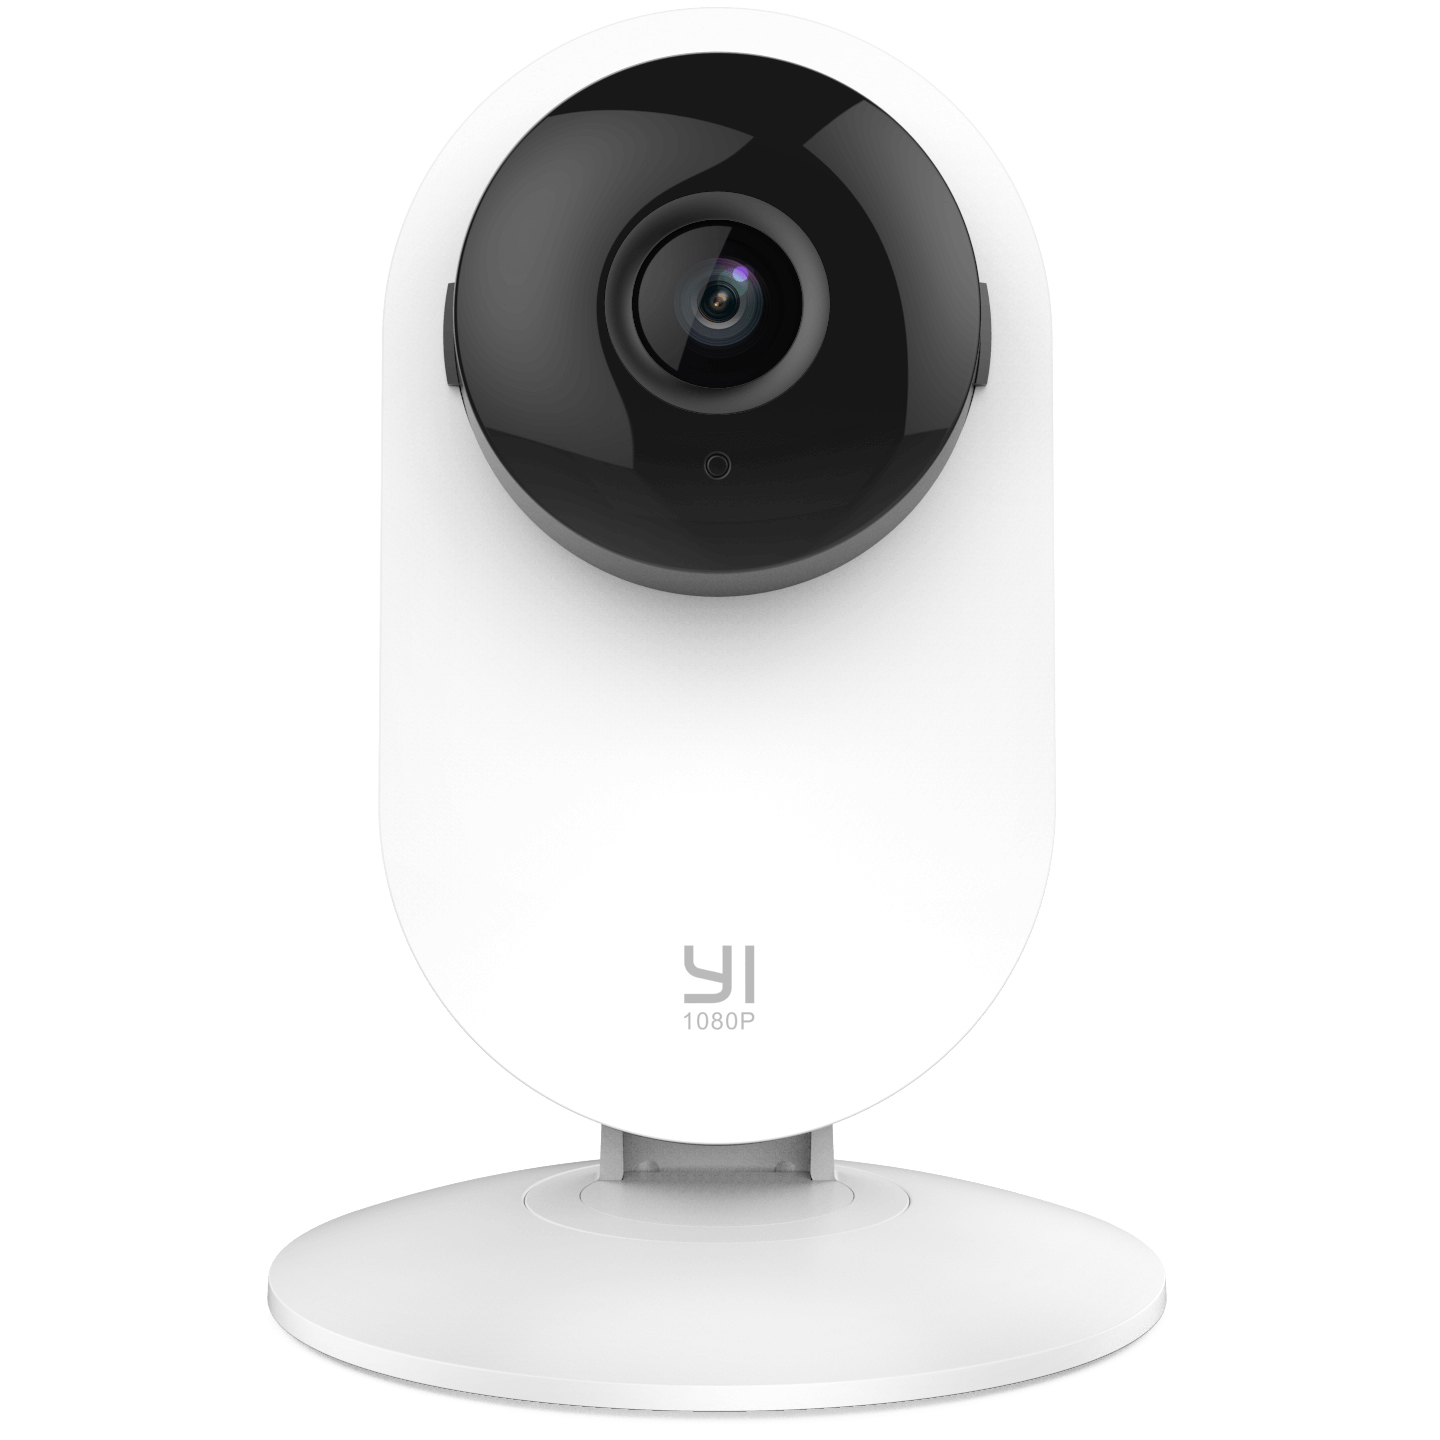 xiaomi yi 1080p home camera wayteq europe. Black Bedroom Furniture Sets. Home Design Ideas